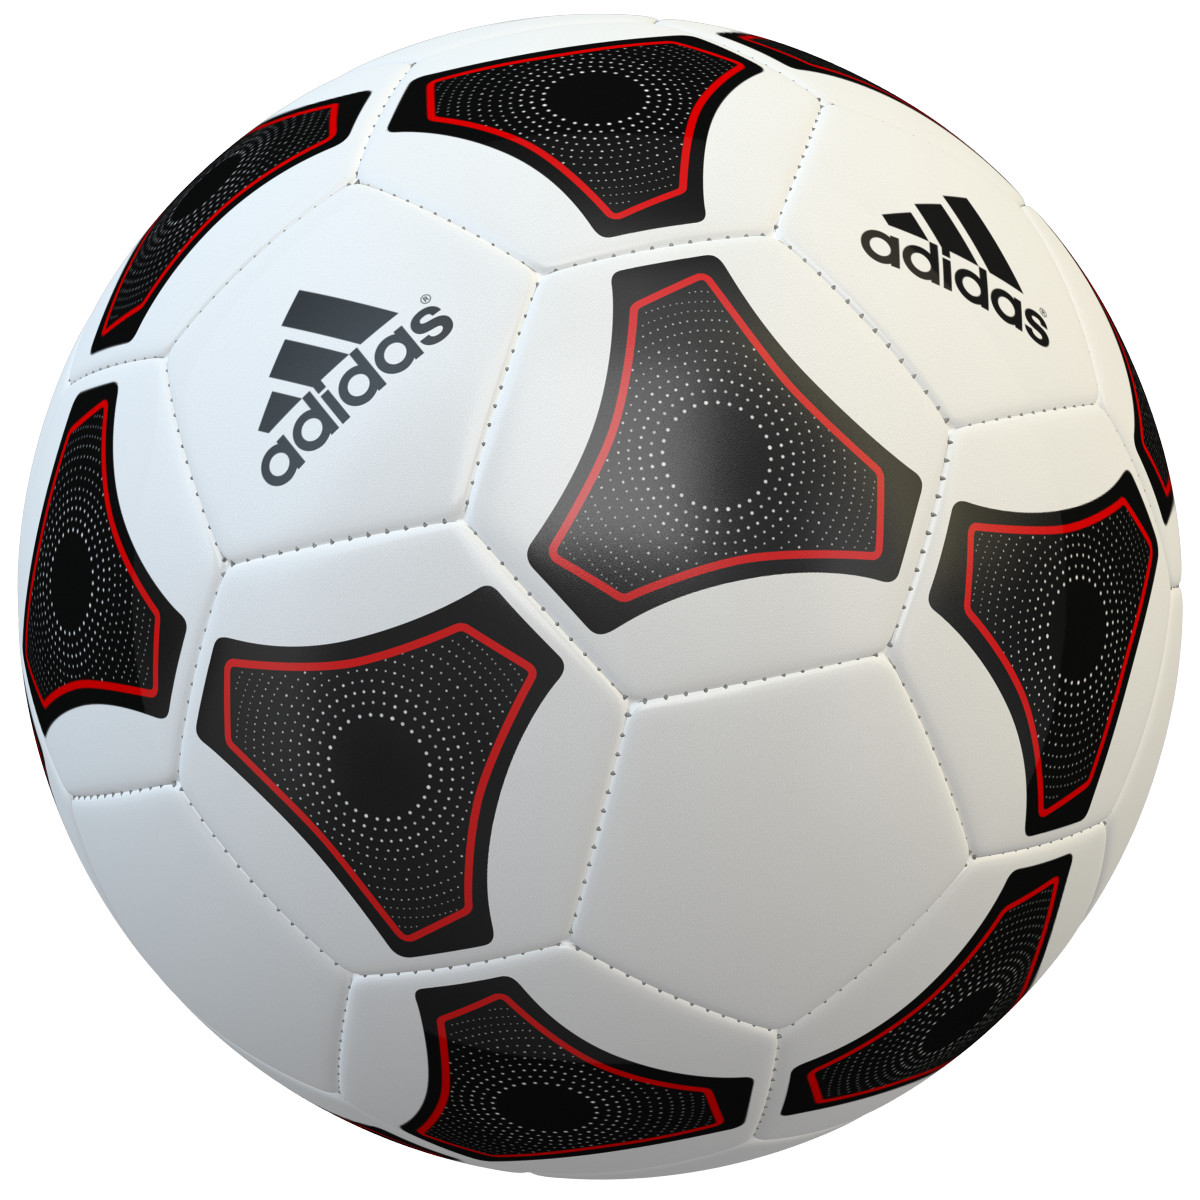 Alfa img - Showing > 3D Football Png